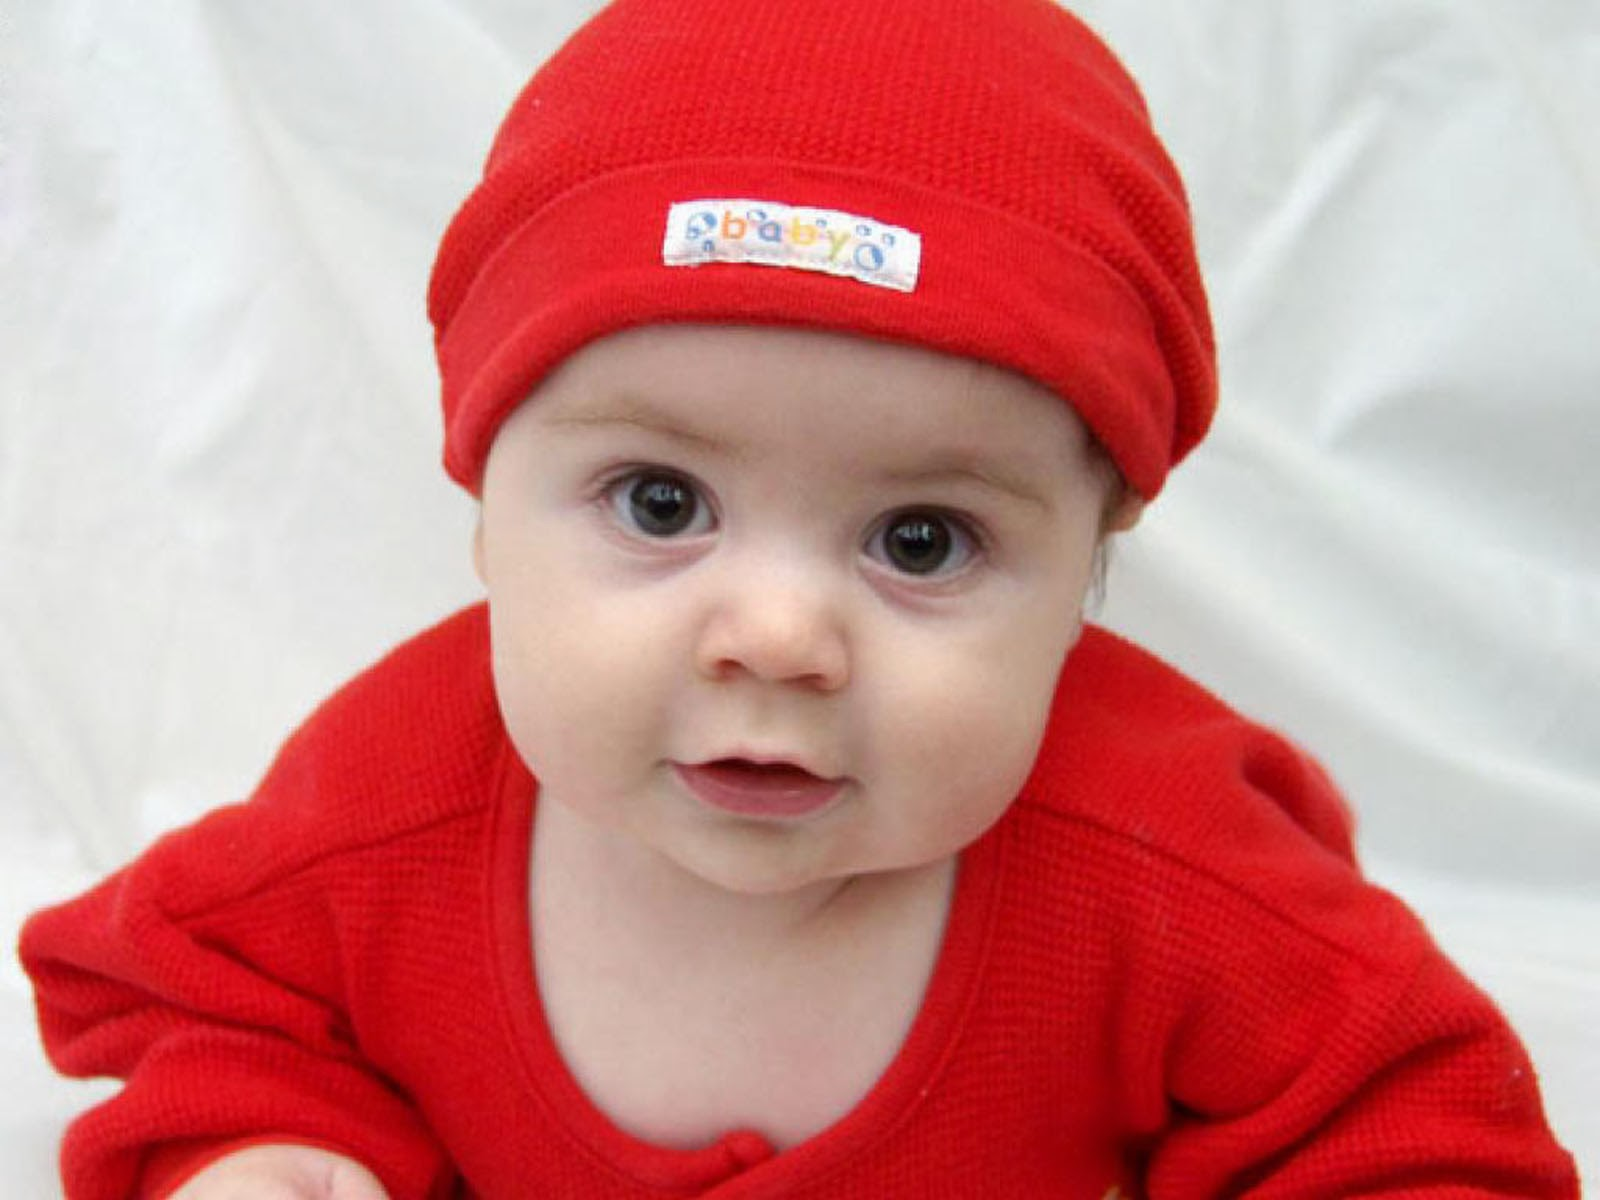 Free Images Cute Baby Pics With Blue Eyes